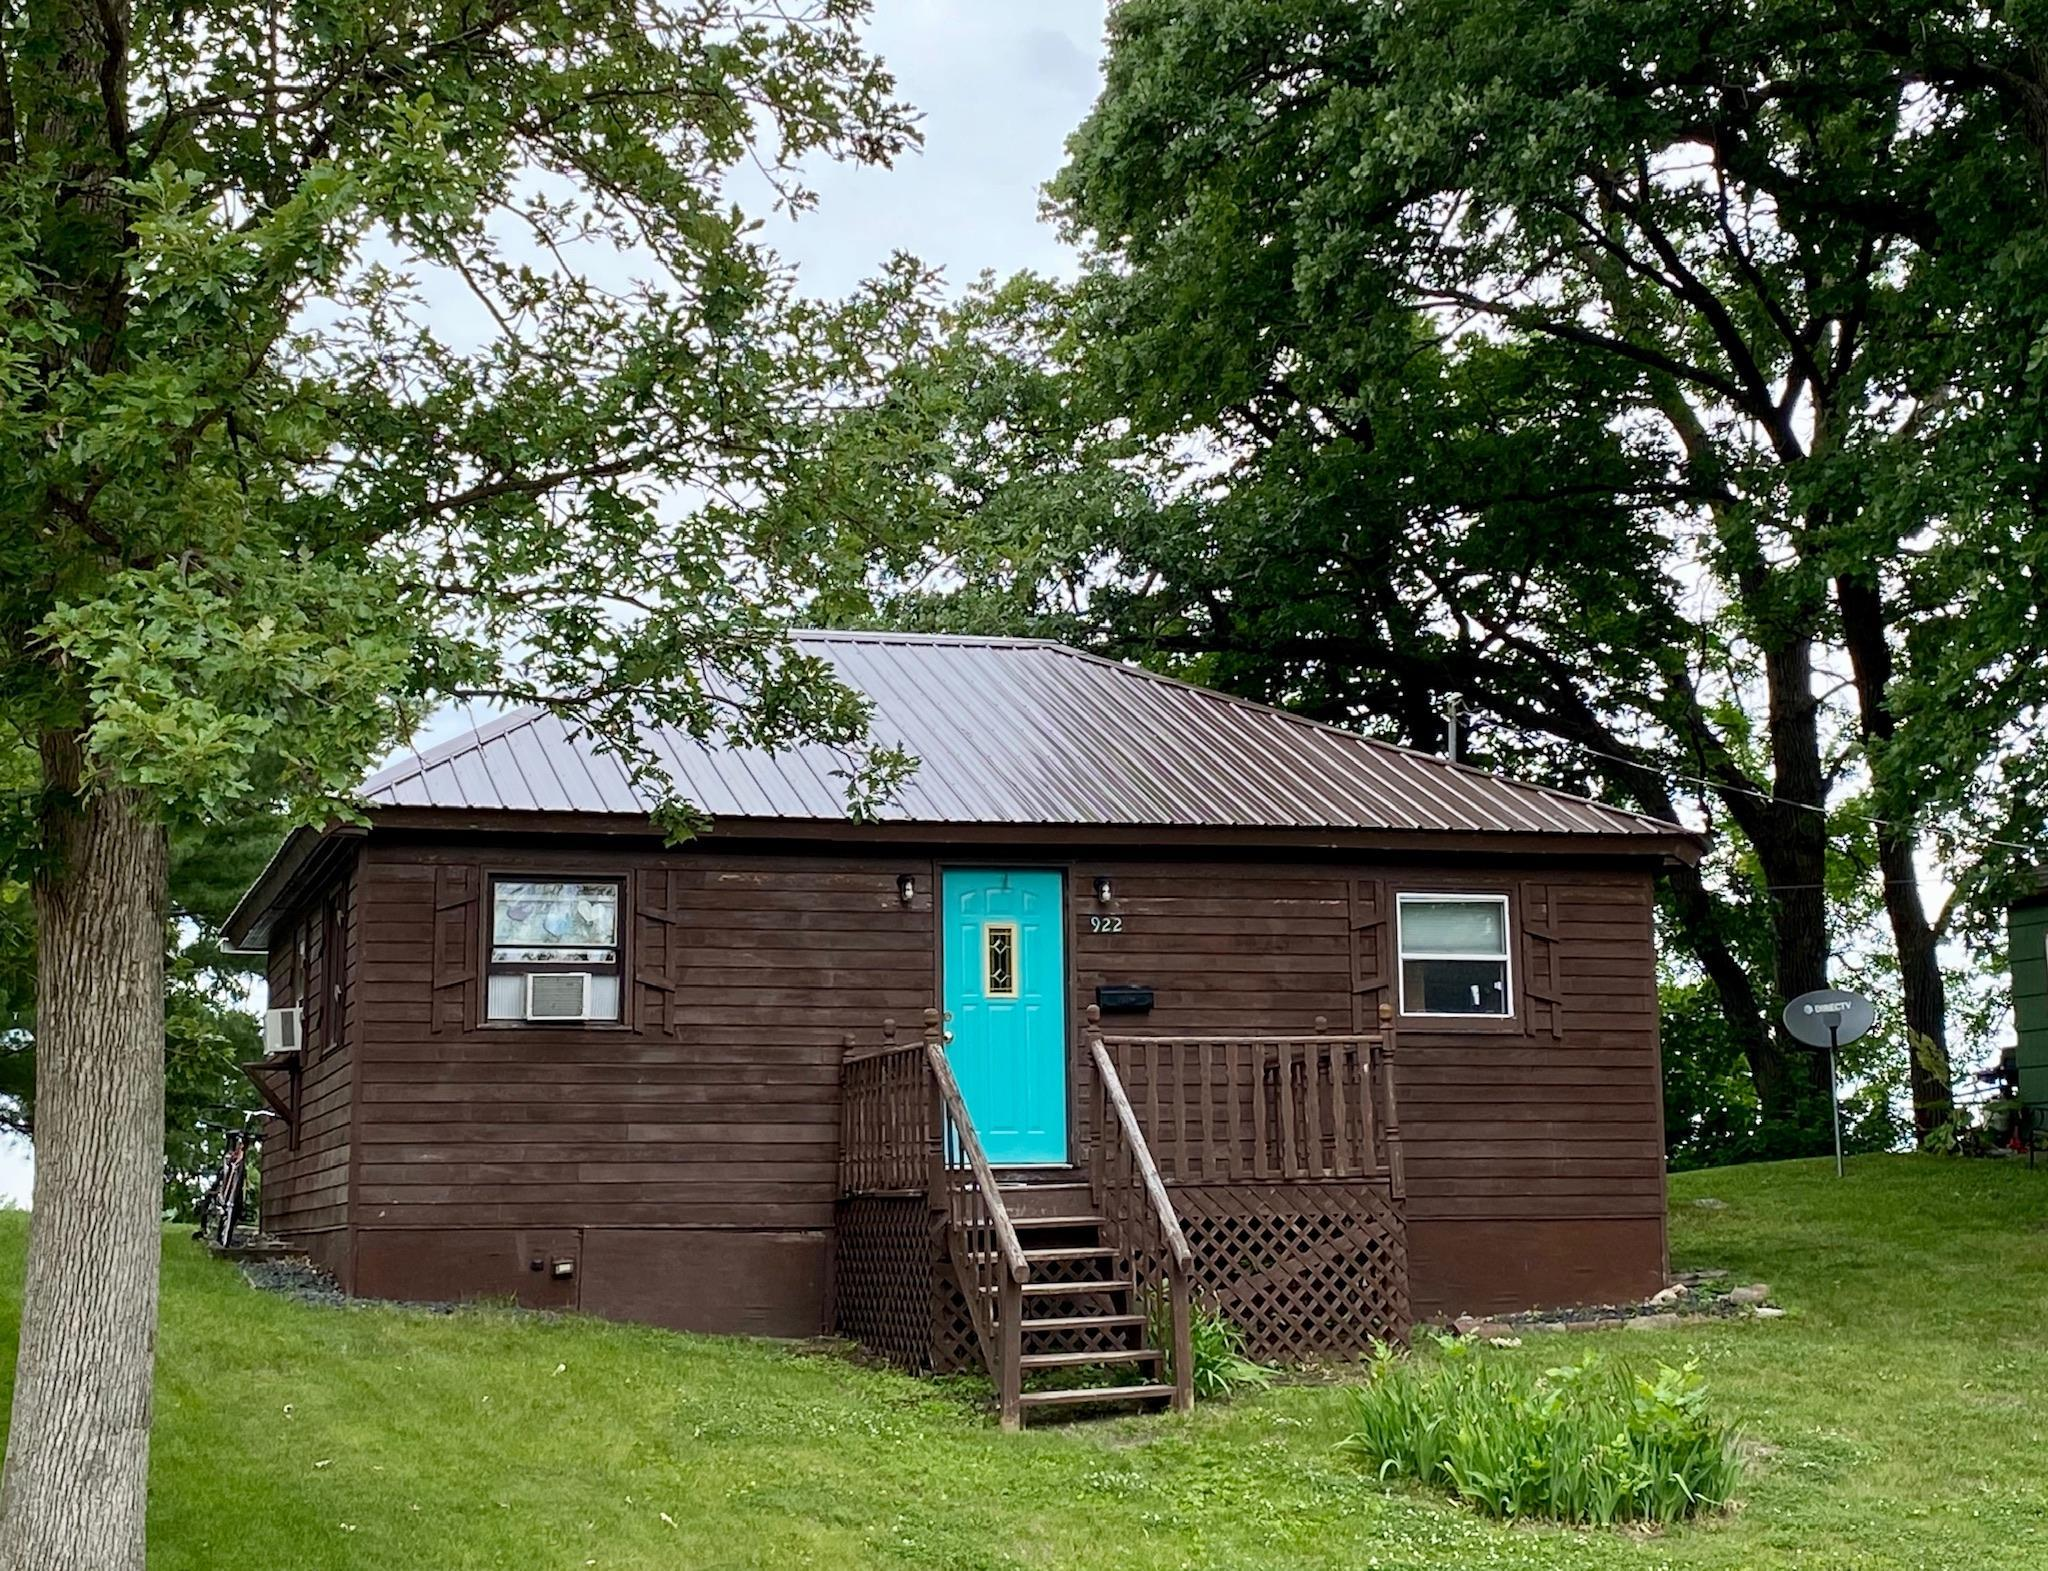 922 Tetonka Property Photo - Waterville, MN real estate listing